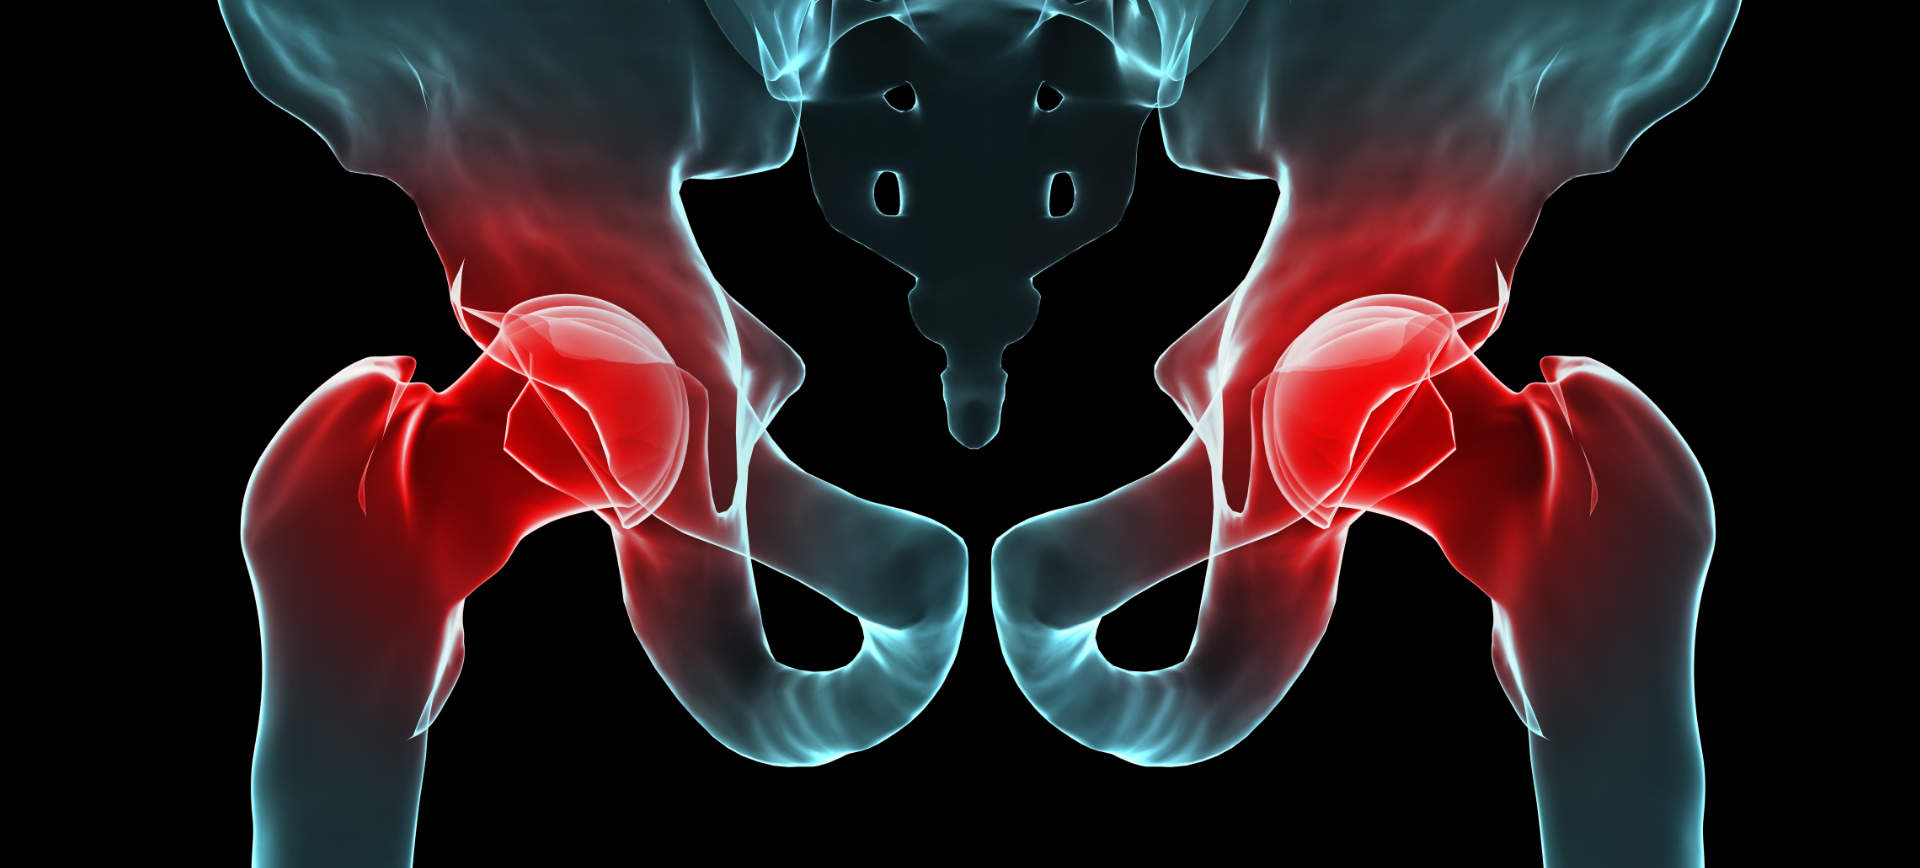 Hip Pain and Injuries